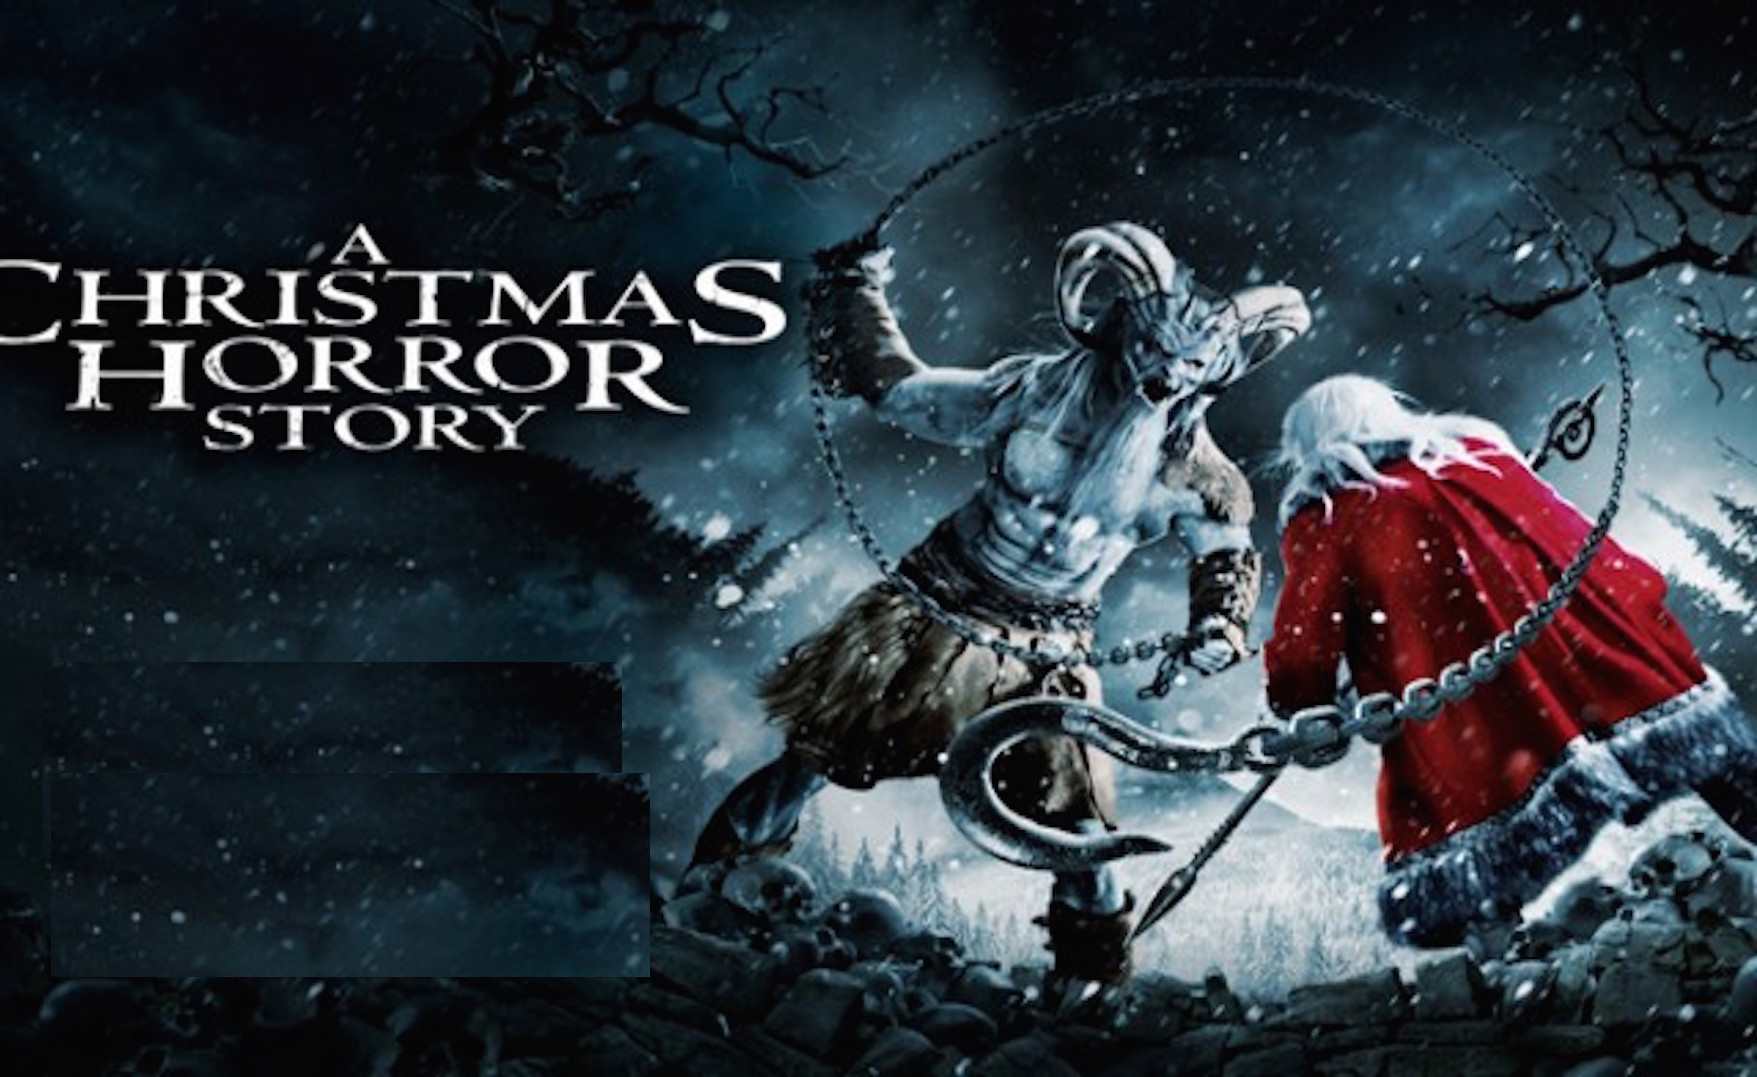 Christmas Horror Story Krampus.A Christmas Horror Story 2015 Krampus Ghosts Zombie